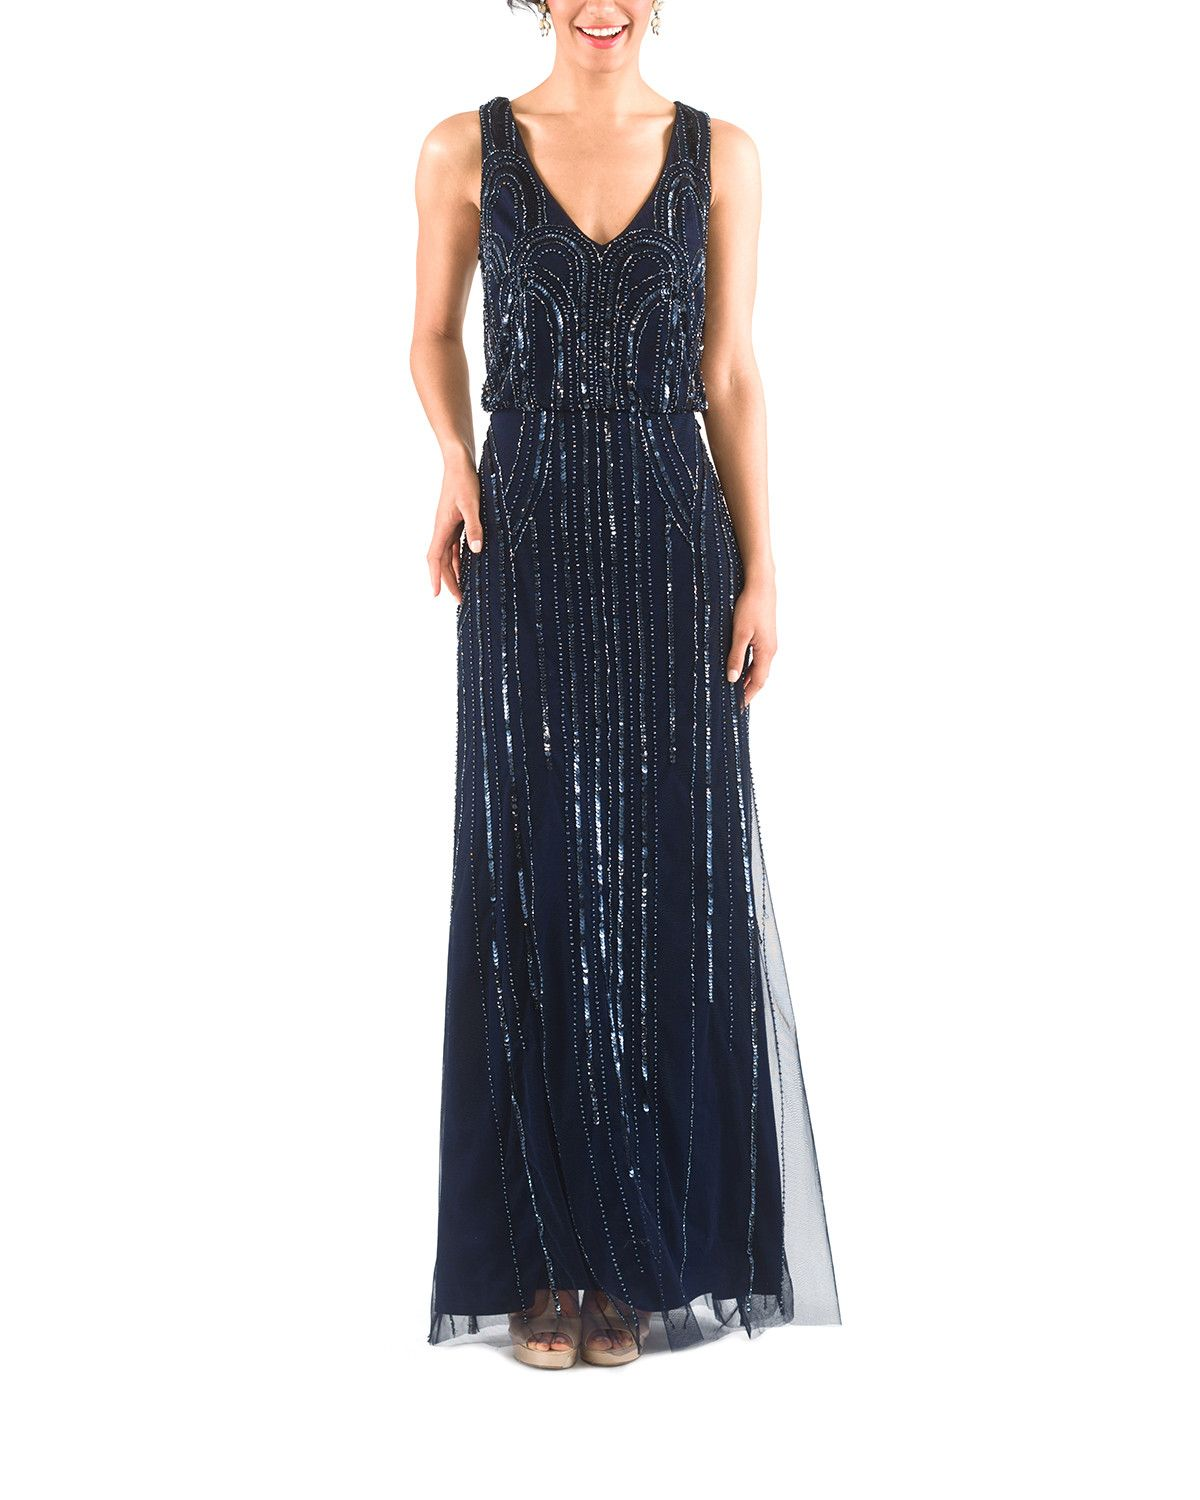 9bf2bf5e91 Midnight blue beaded bridesmaid dress by Adrianna Papell. The Adrianna  Papell Beaded Blouson Art Deco Long in Midnight is the perfect bridesmaid  dress for a ...